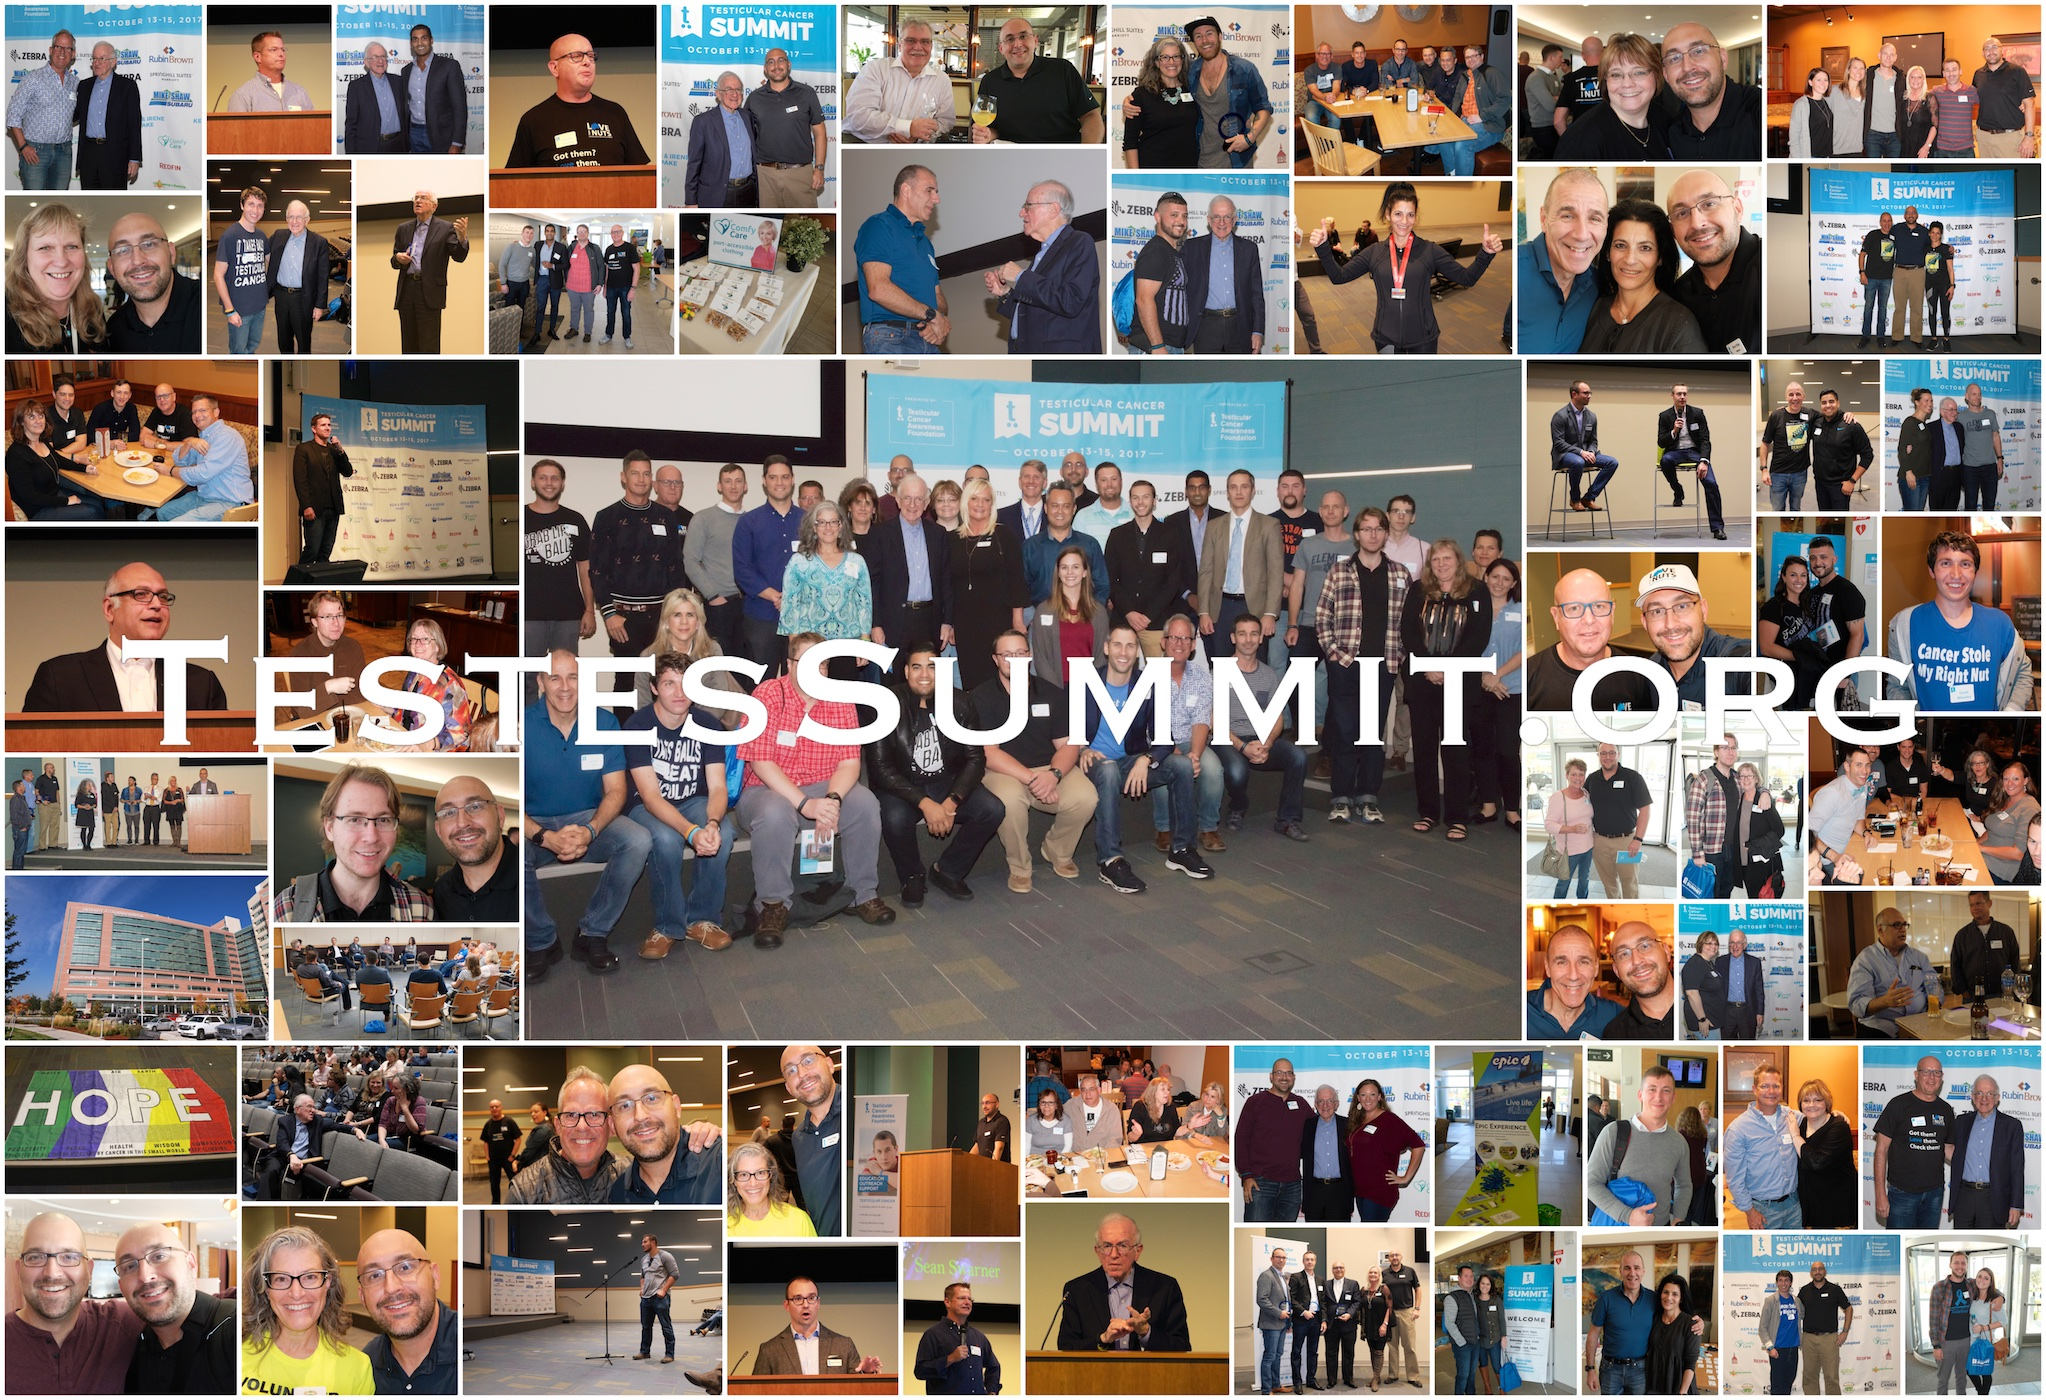 I'm very proud of everyone who helped make the original Testicular Cancer Summit of 2017 happen.